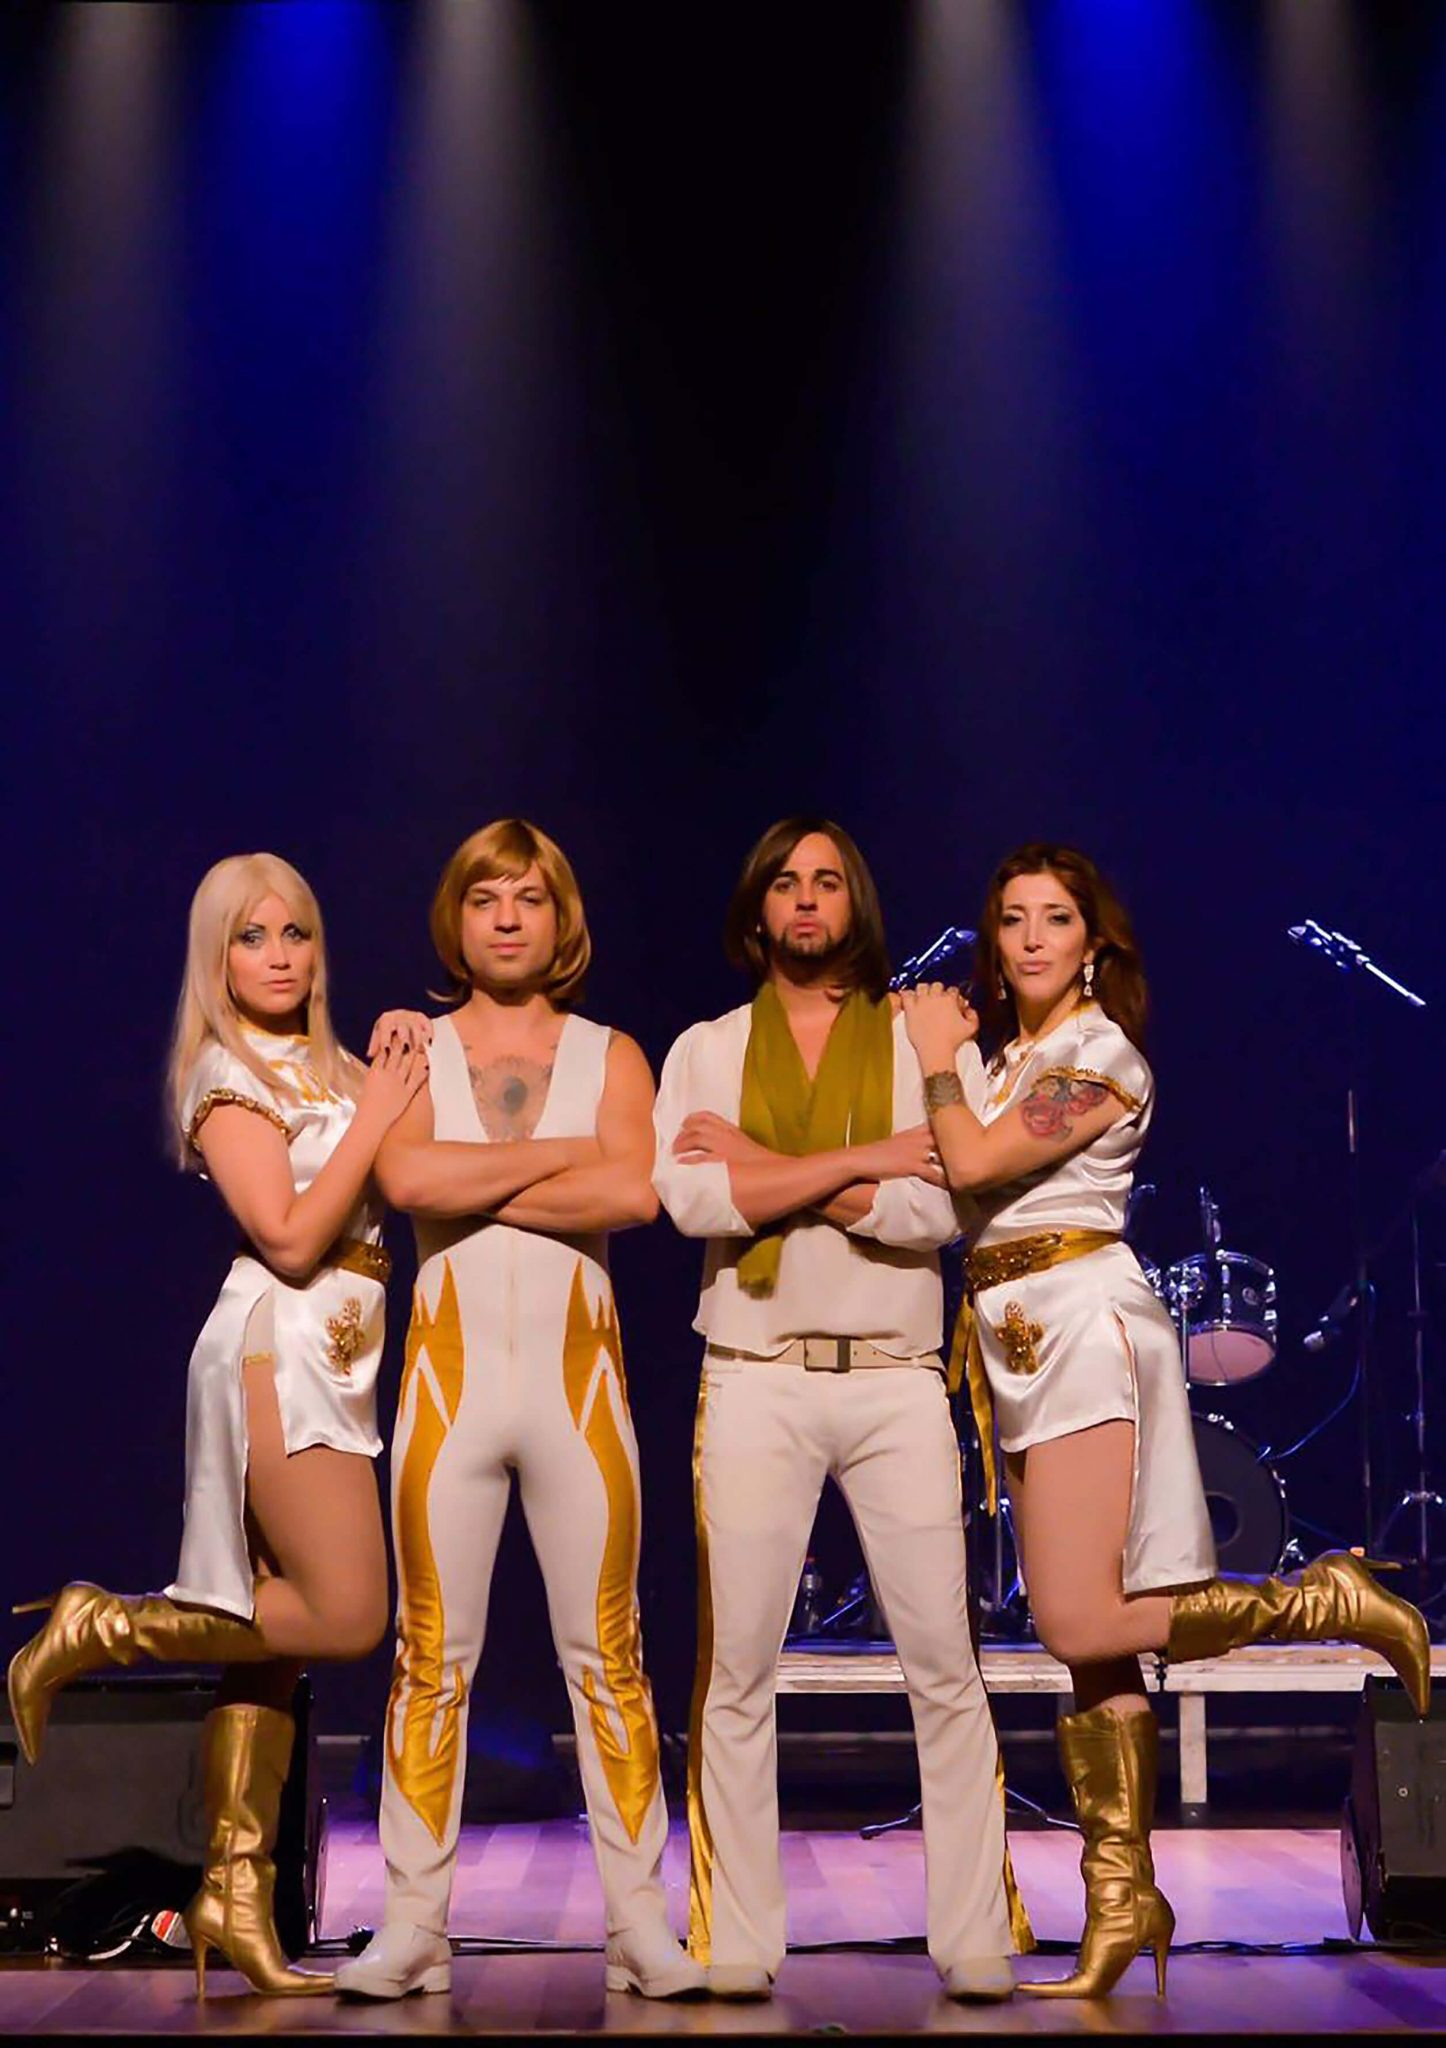 ABBA The History - A Salute To Abba 1 (1)